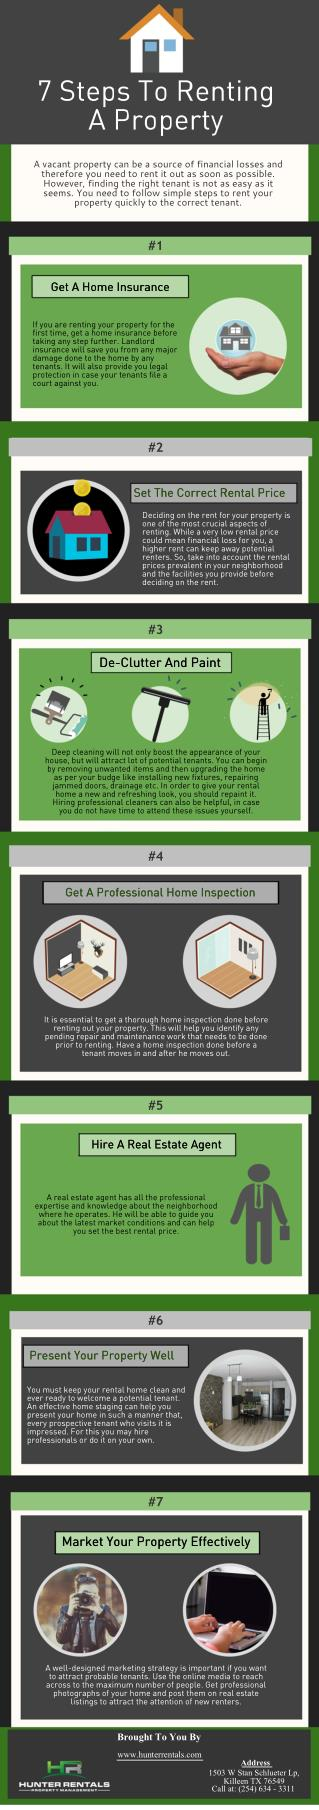 Steps To Renting A Property